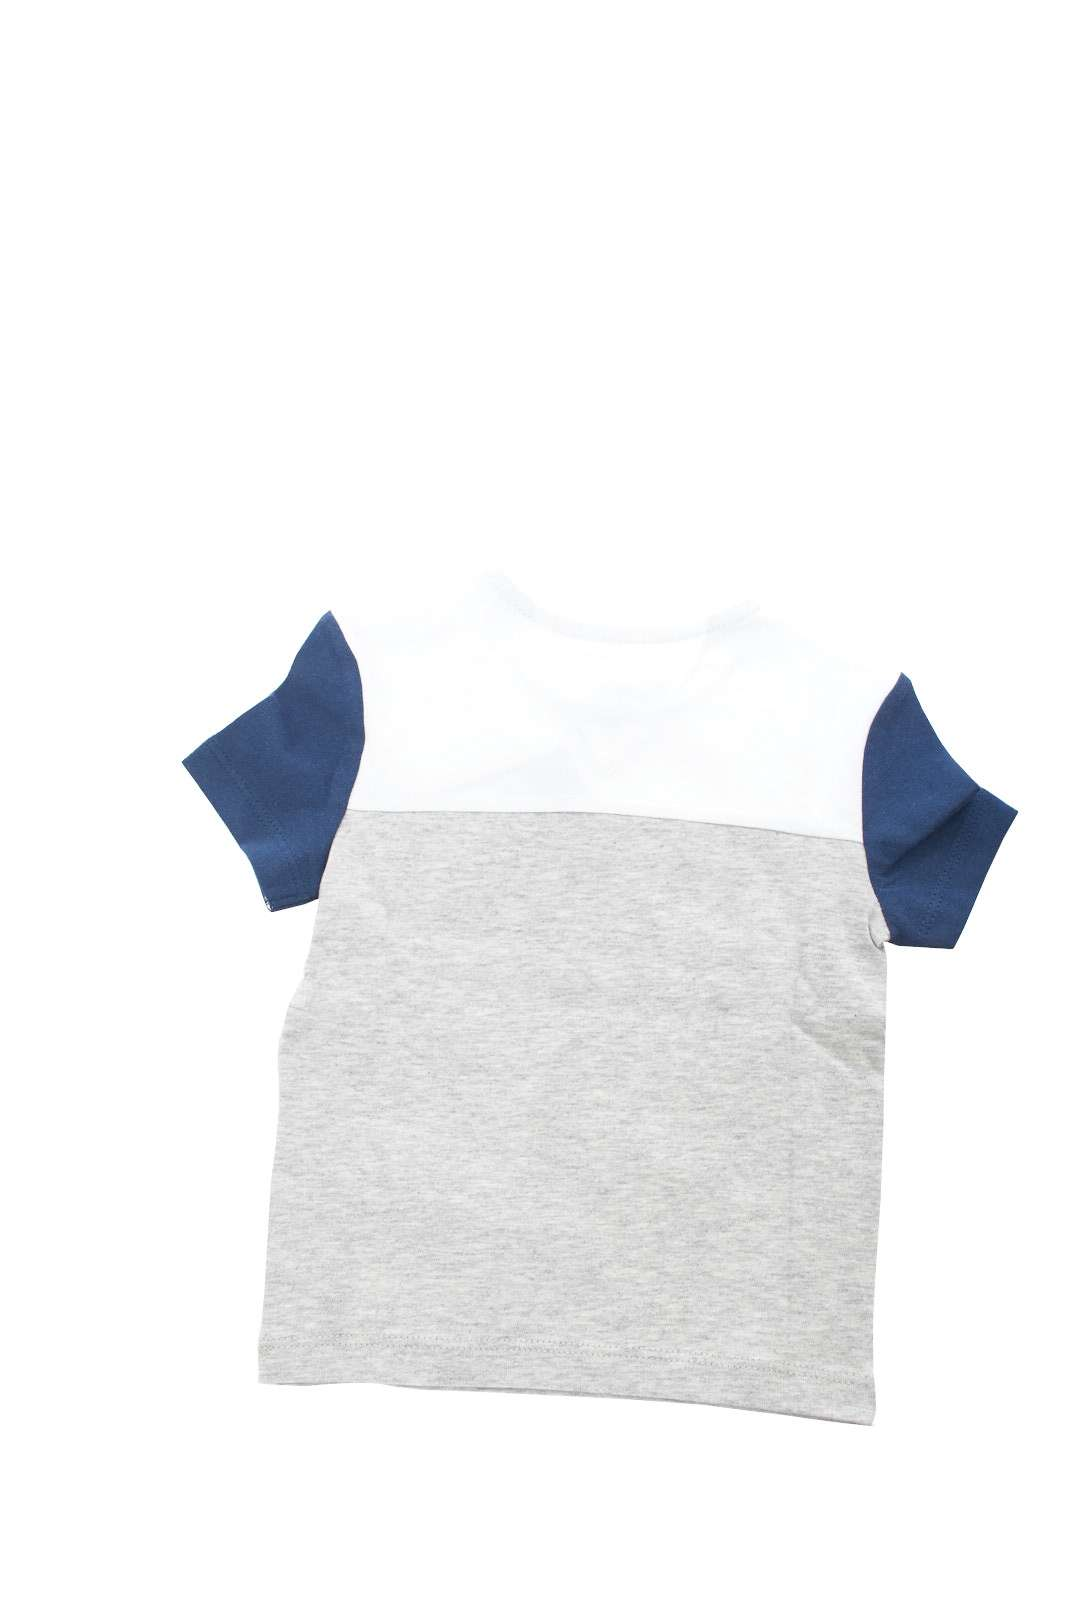 https://www.parmax.com/media/catalog/product/a/i/PE-outlet_parmax-t-shirt-bambino-Tommy-Hilfiger-KB0KB01994-B_1.jpg